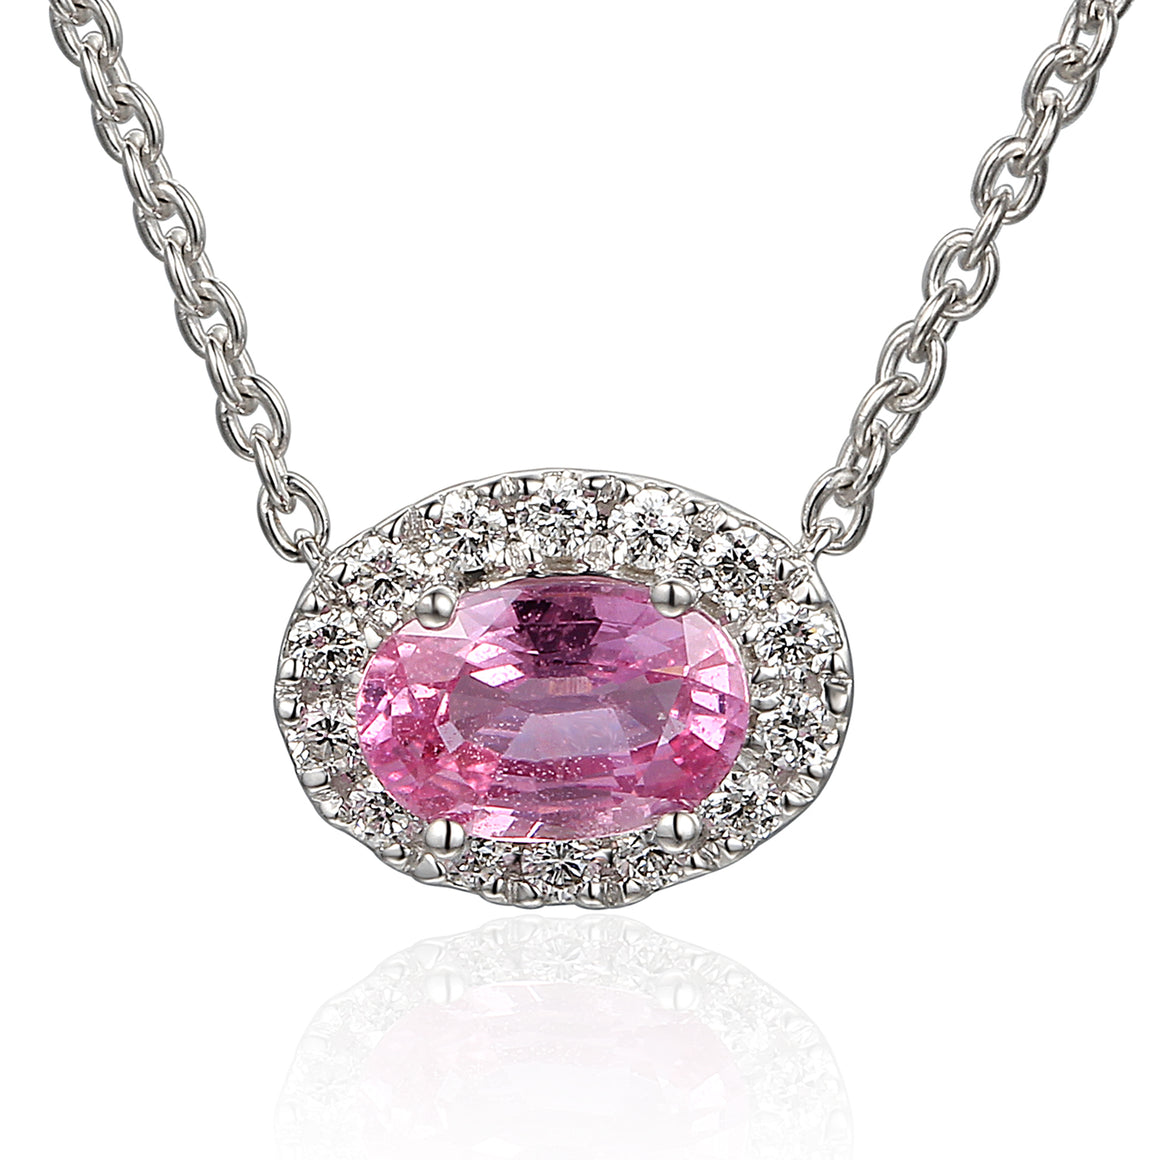 18ct White Gold Oval Pink Sapphire and Diamond Pendant on Chain